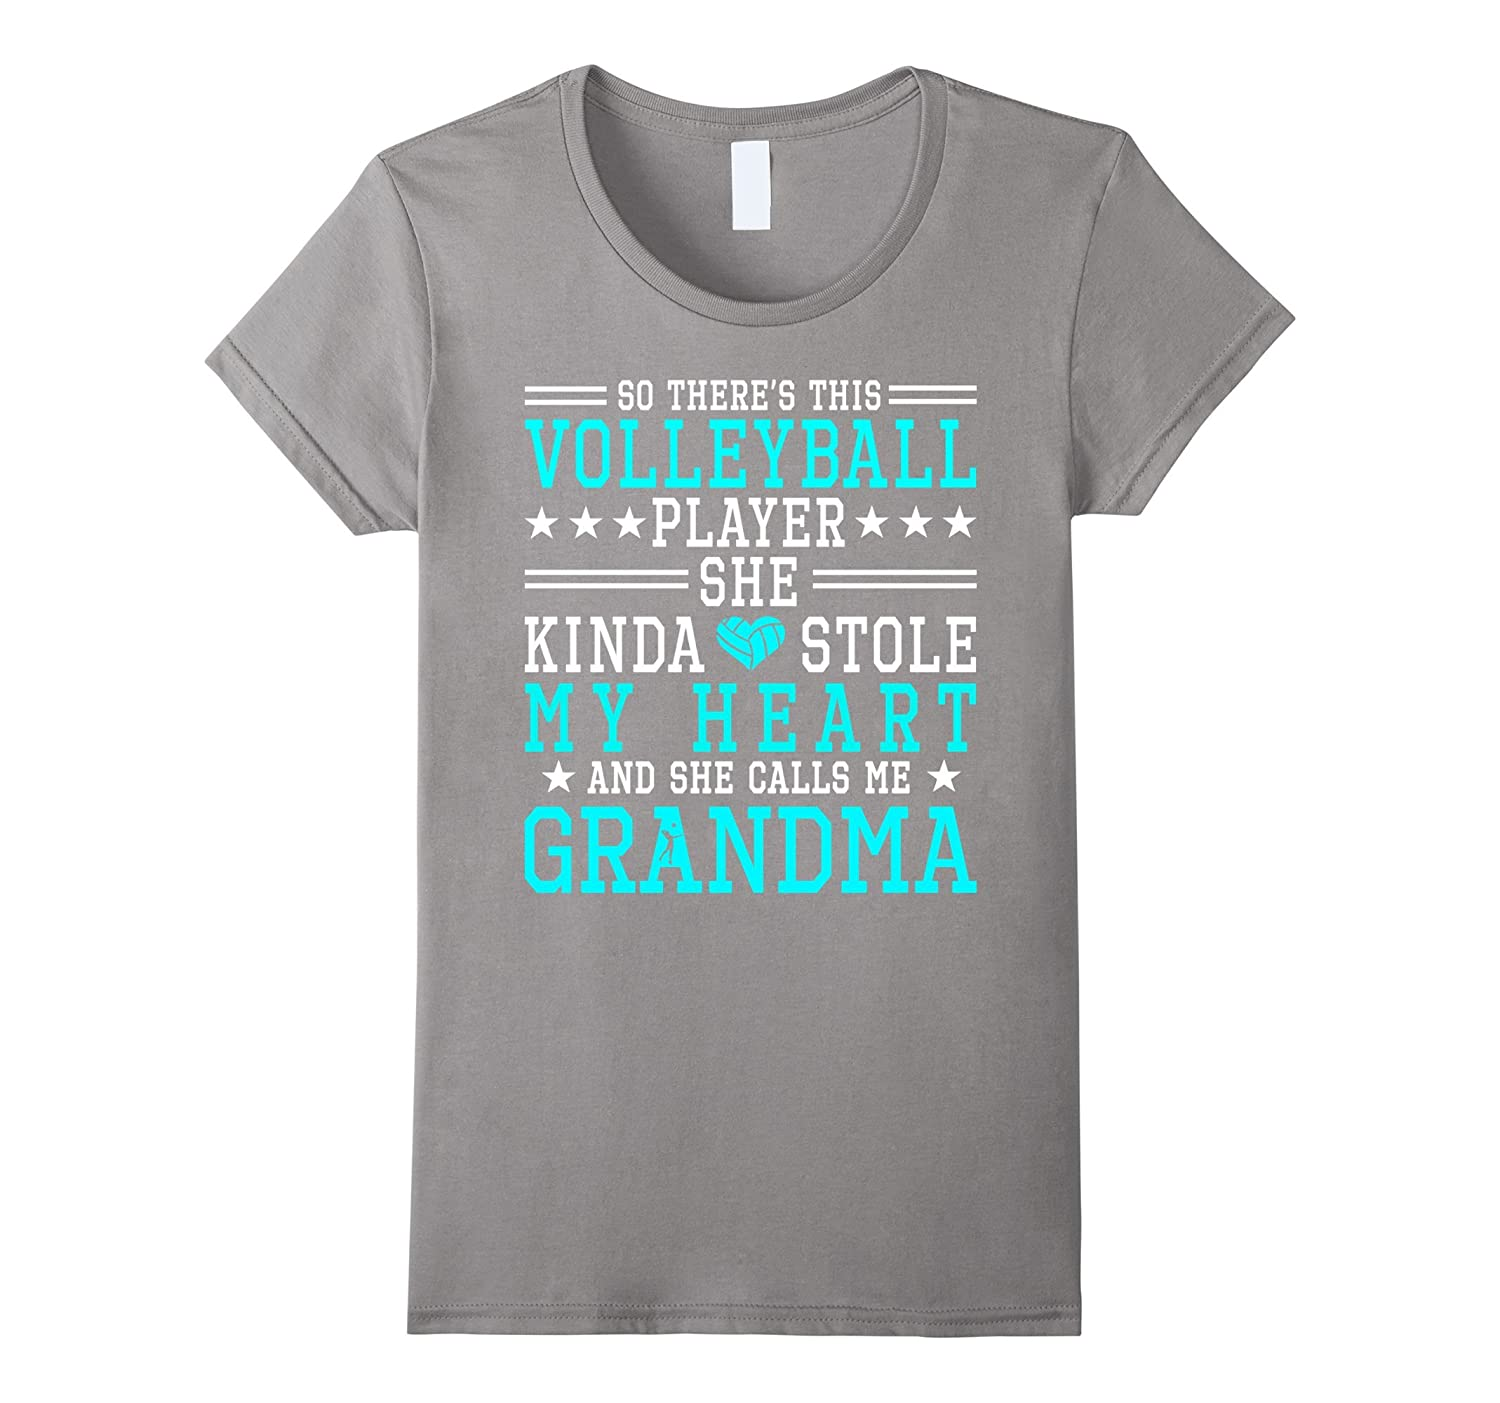 Volleyball Player She Stole My Heart Call Me Grandma Shirt